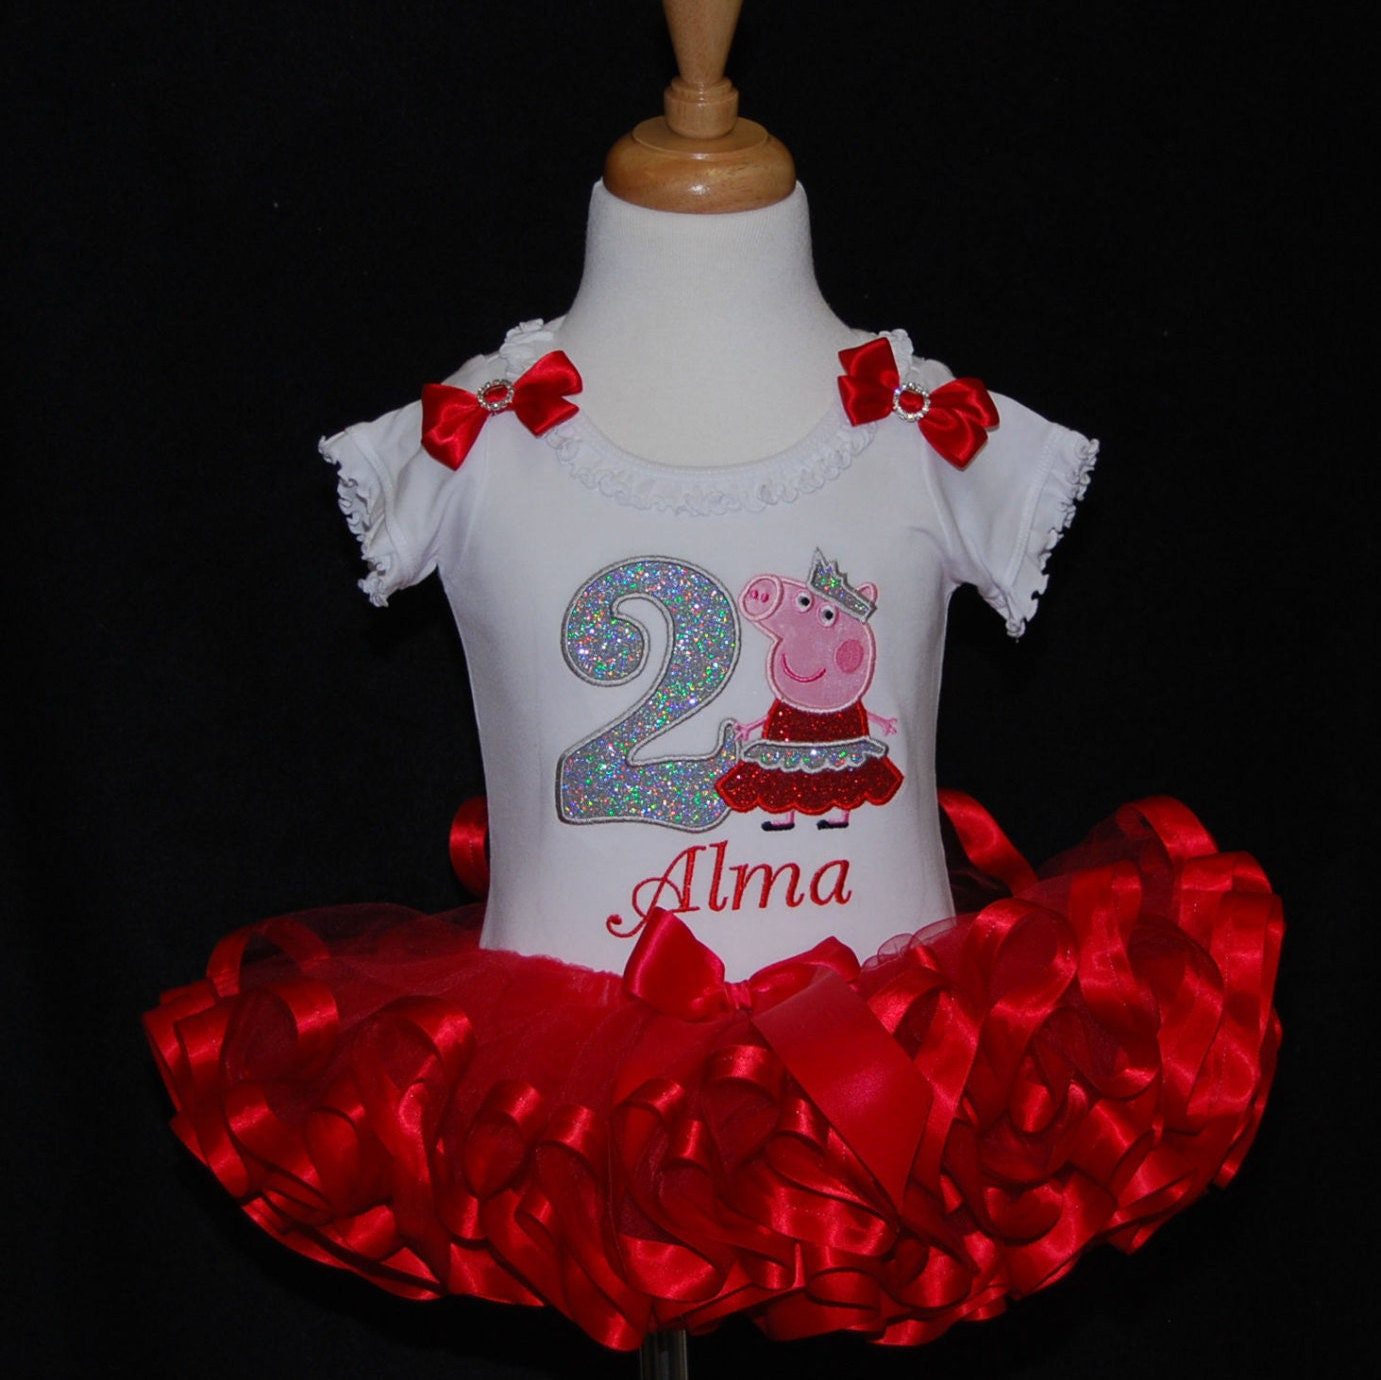 peppa pig birthday outfit 2nd Birthday Tutu Princess Peppa Pig Birthday Outfit toddler tutu birthday dress glitter number birthday shirt